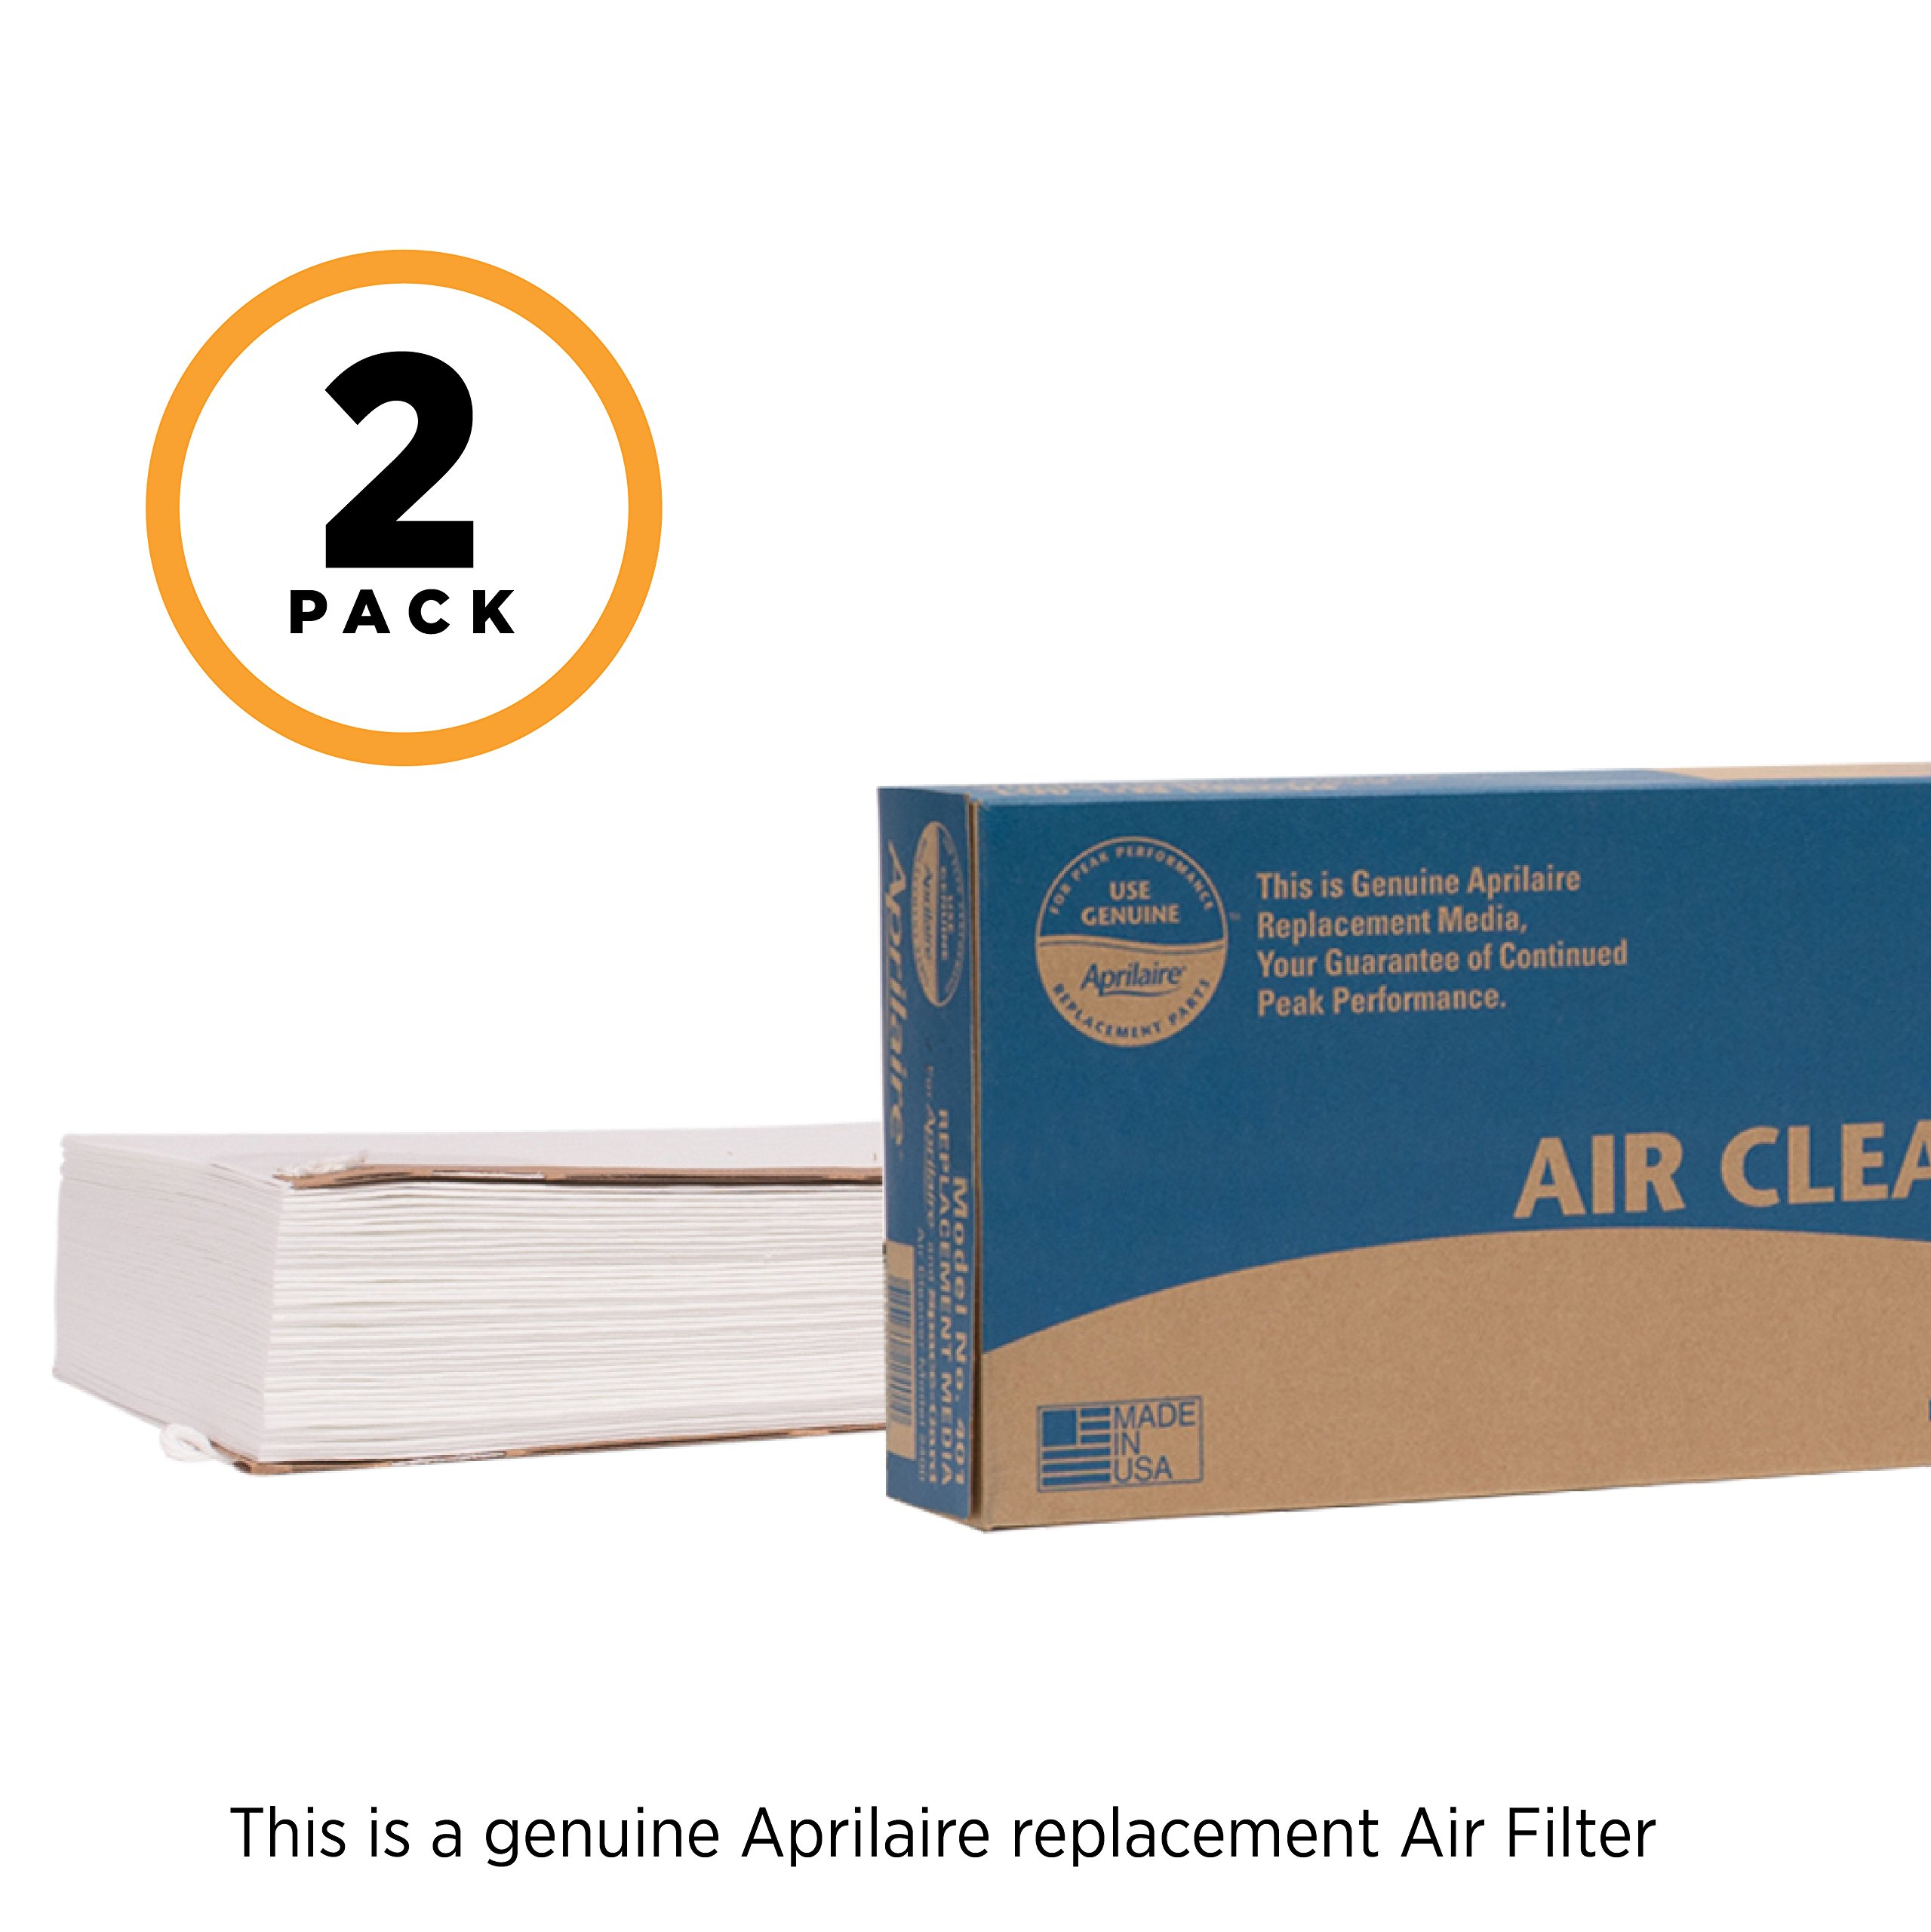 Aprilaire 401 Replacement Filter for Aprilaire Whole House Air Purifier Model: 2400, Space Gard